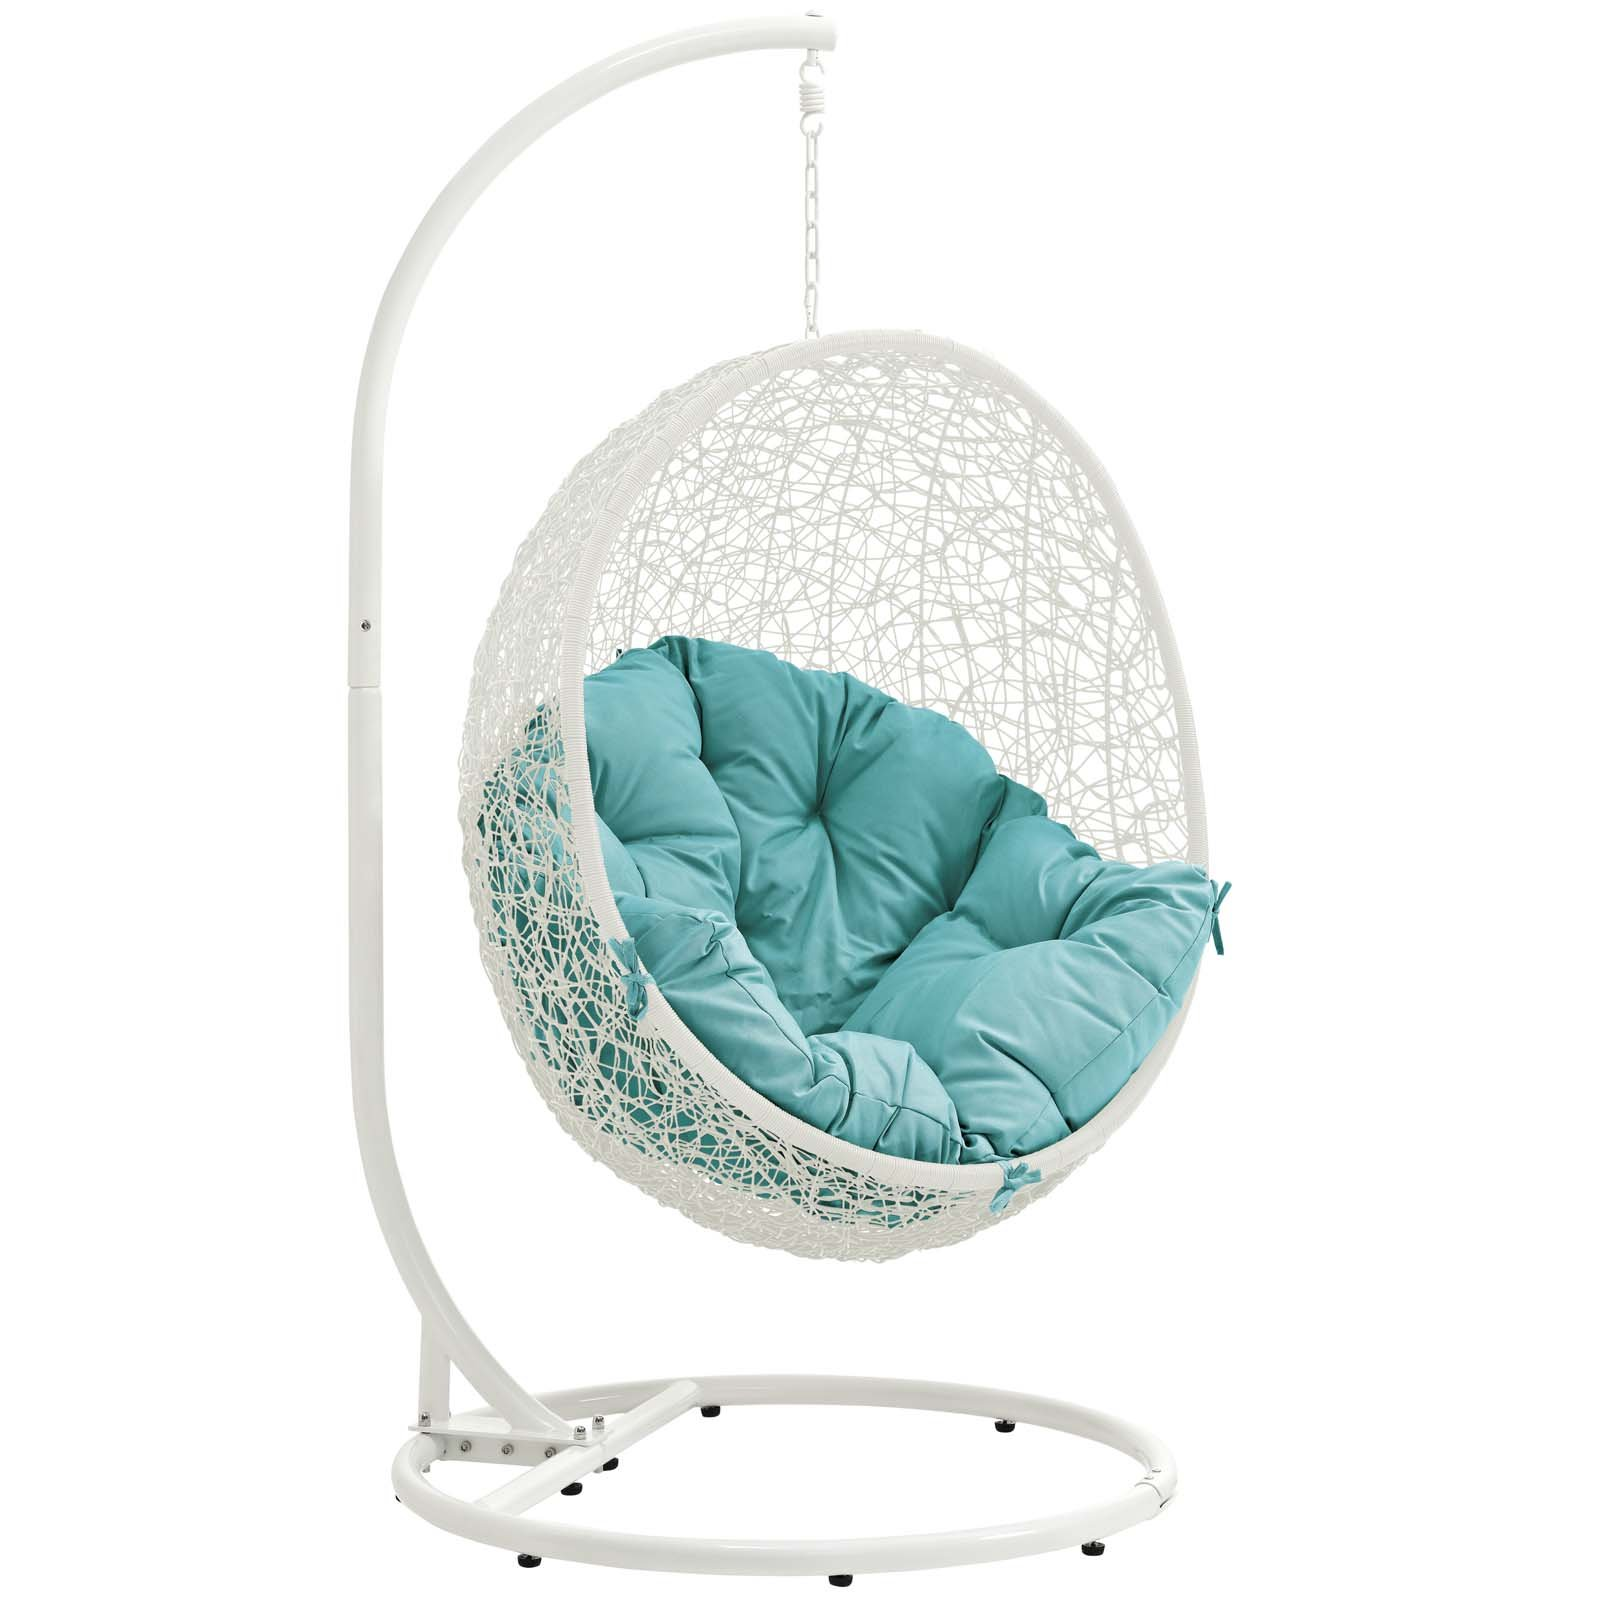 Modway Hide Wicker Rattan Outdoor Patio Porch Lounge Egg Swing Chair Set with Stand in White Turquoise